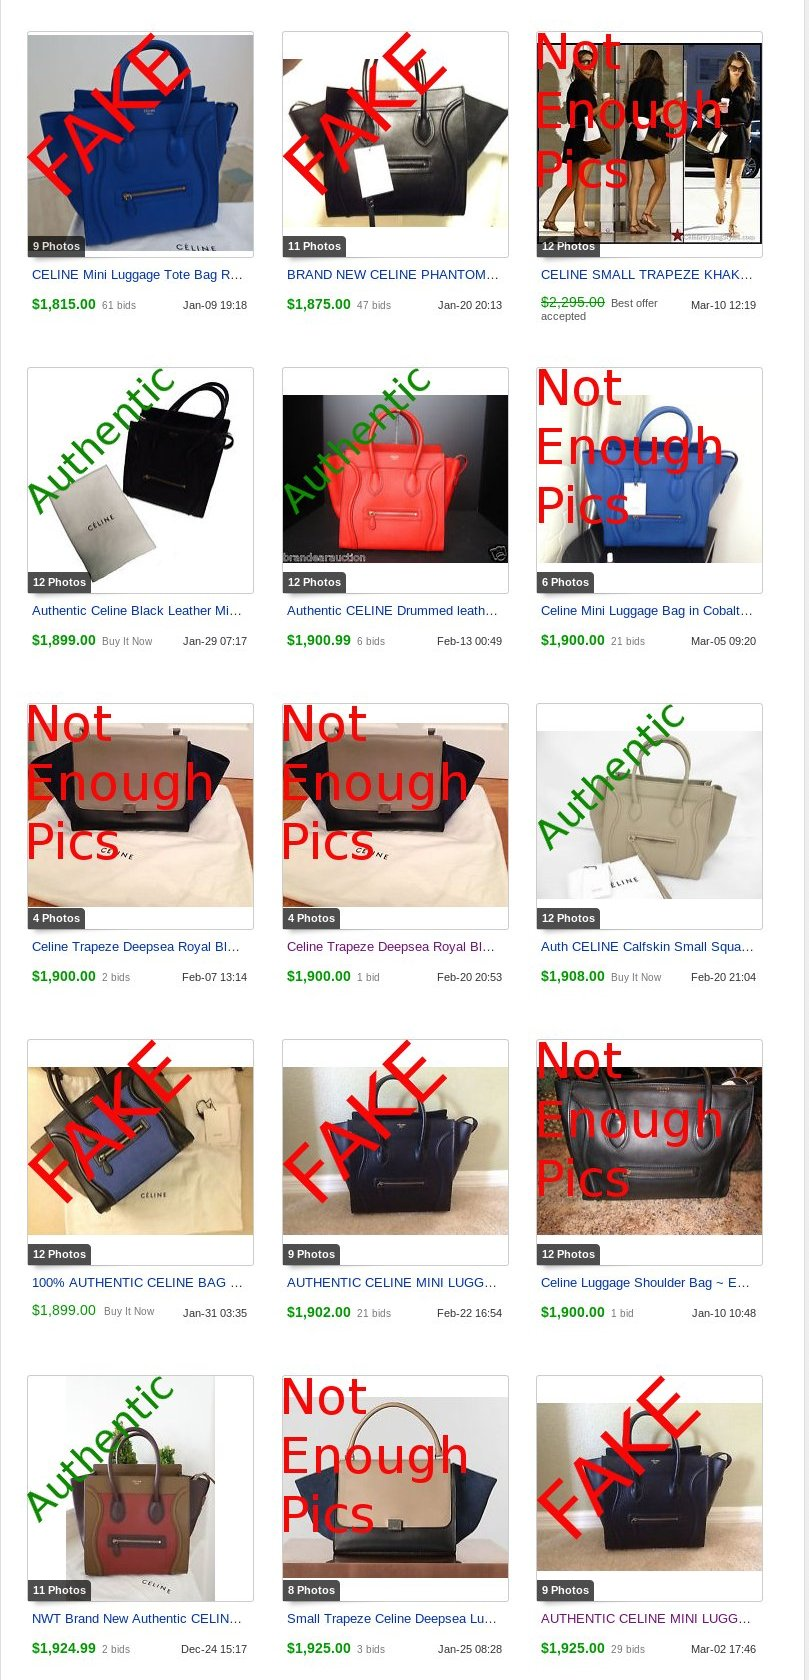 who carries celine bags - Counterfeit Celine Selling for LOTS of Money | Lollipuff